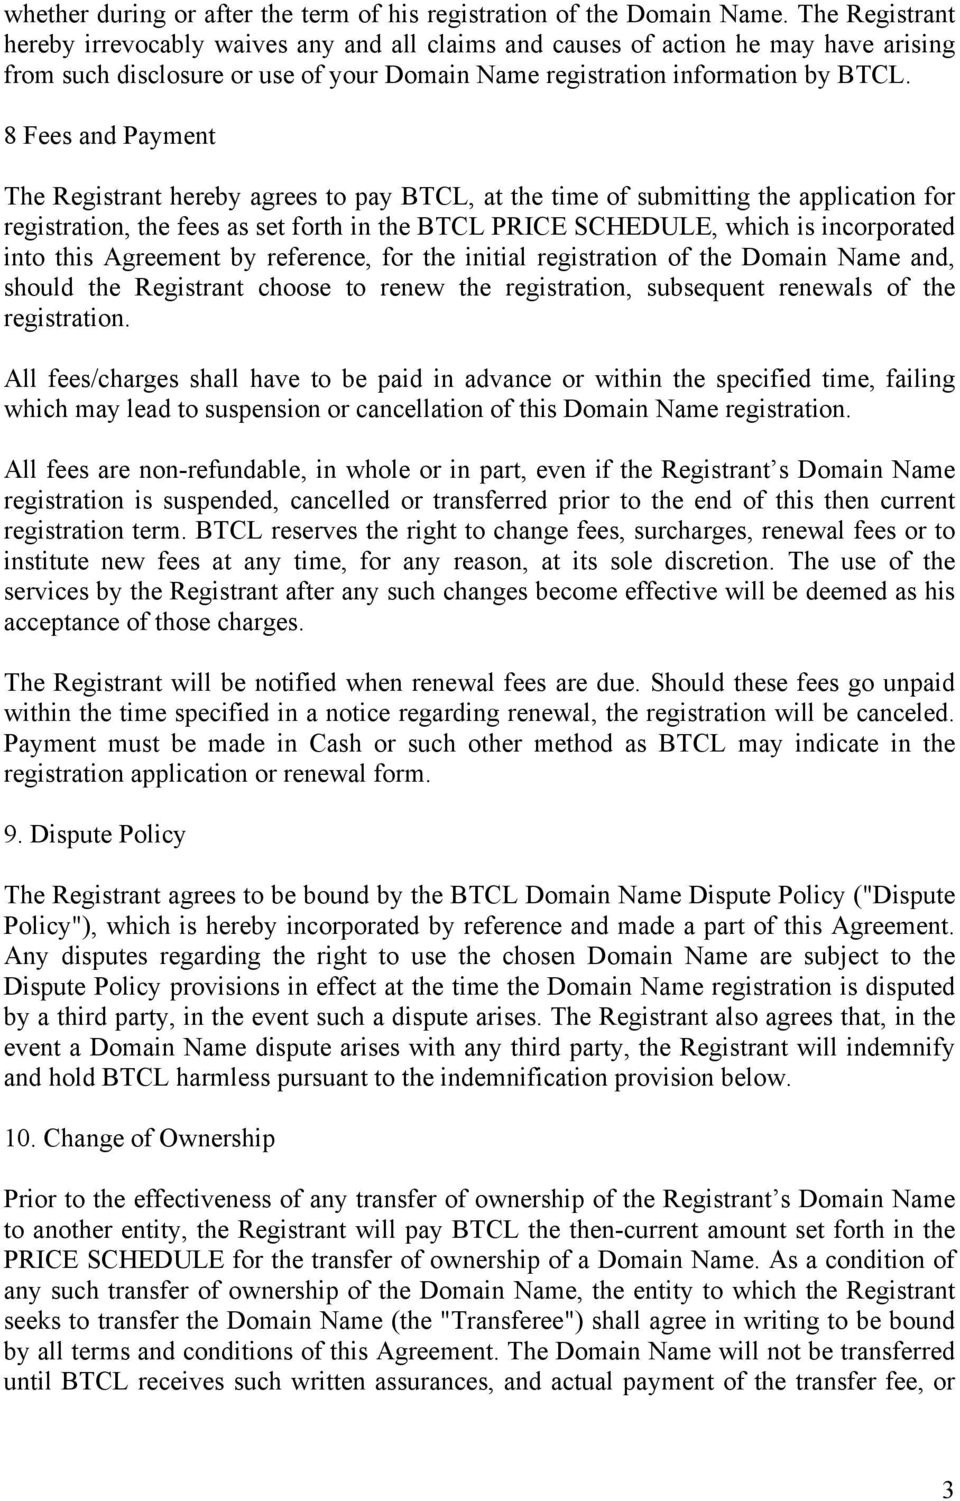 8 Fees and Payment The Registrant hereby agrees to pay BTCL, at the time of submitting the application for registration, the fees as set forth in the BTCL PRICE SCHEDULE, which is incorporated into